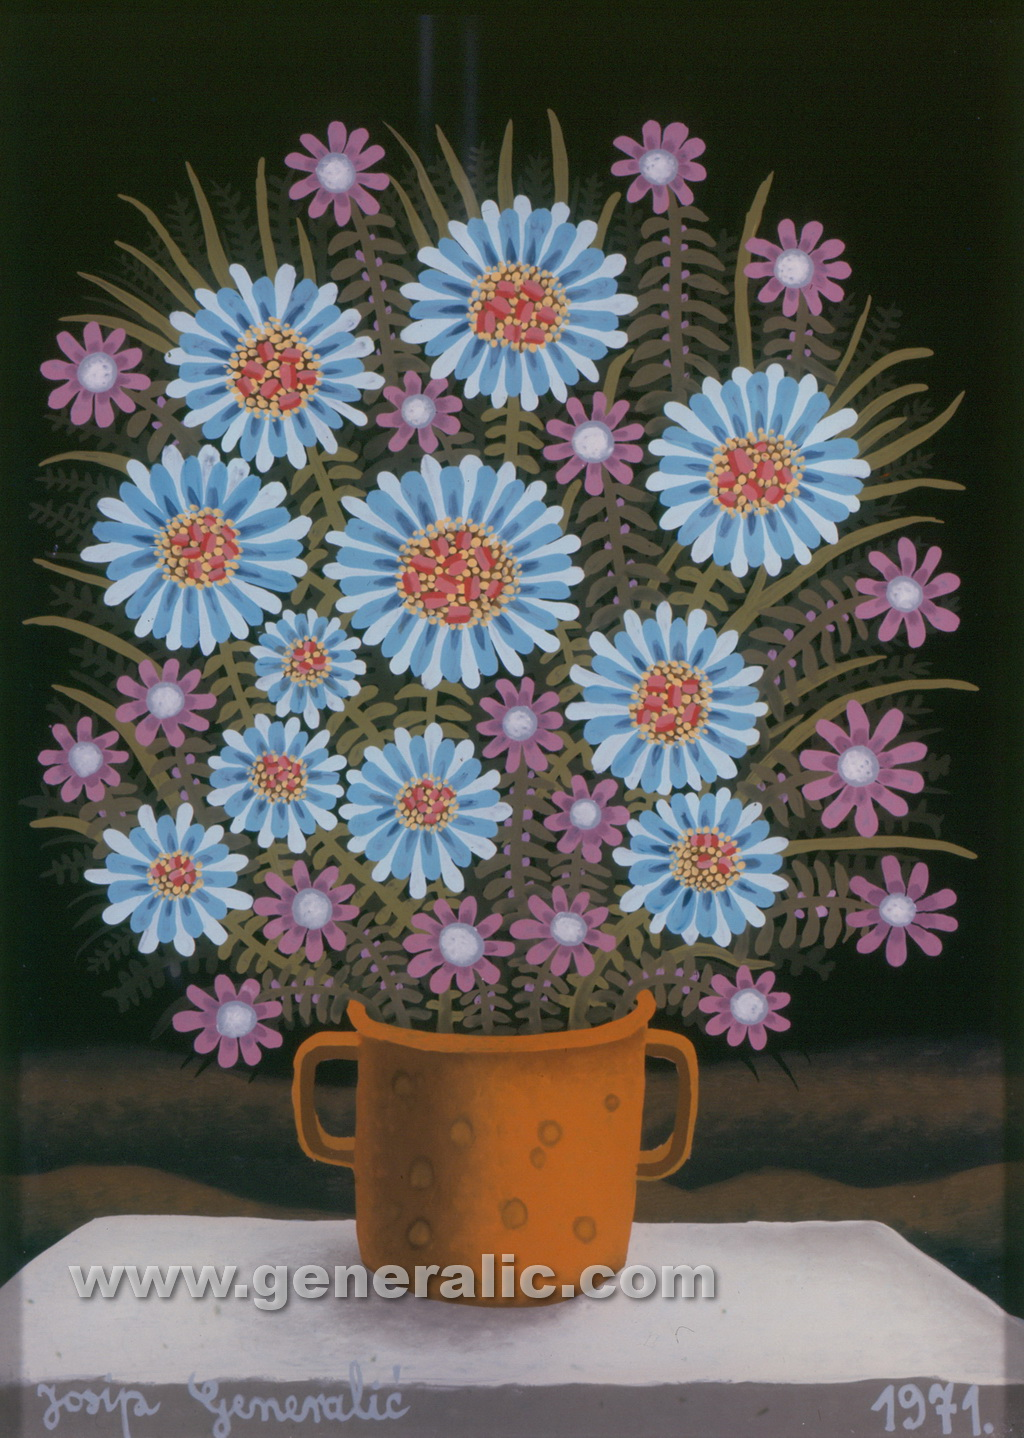 Josip Generalic, 1971, Blue and violet flowers, oil on glass